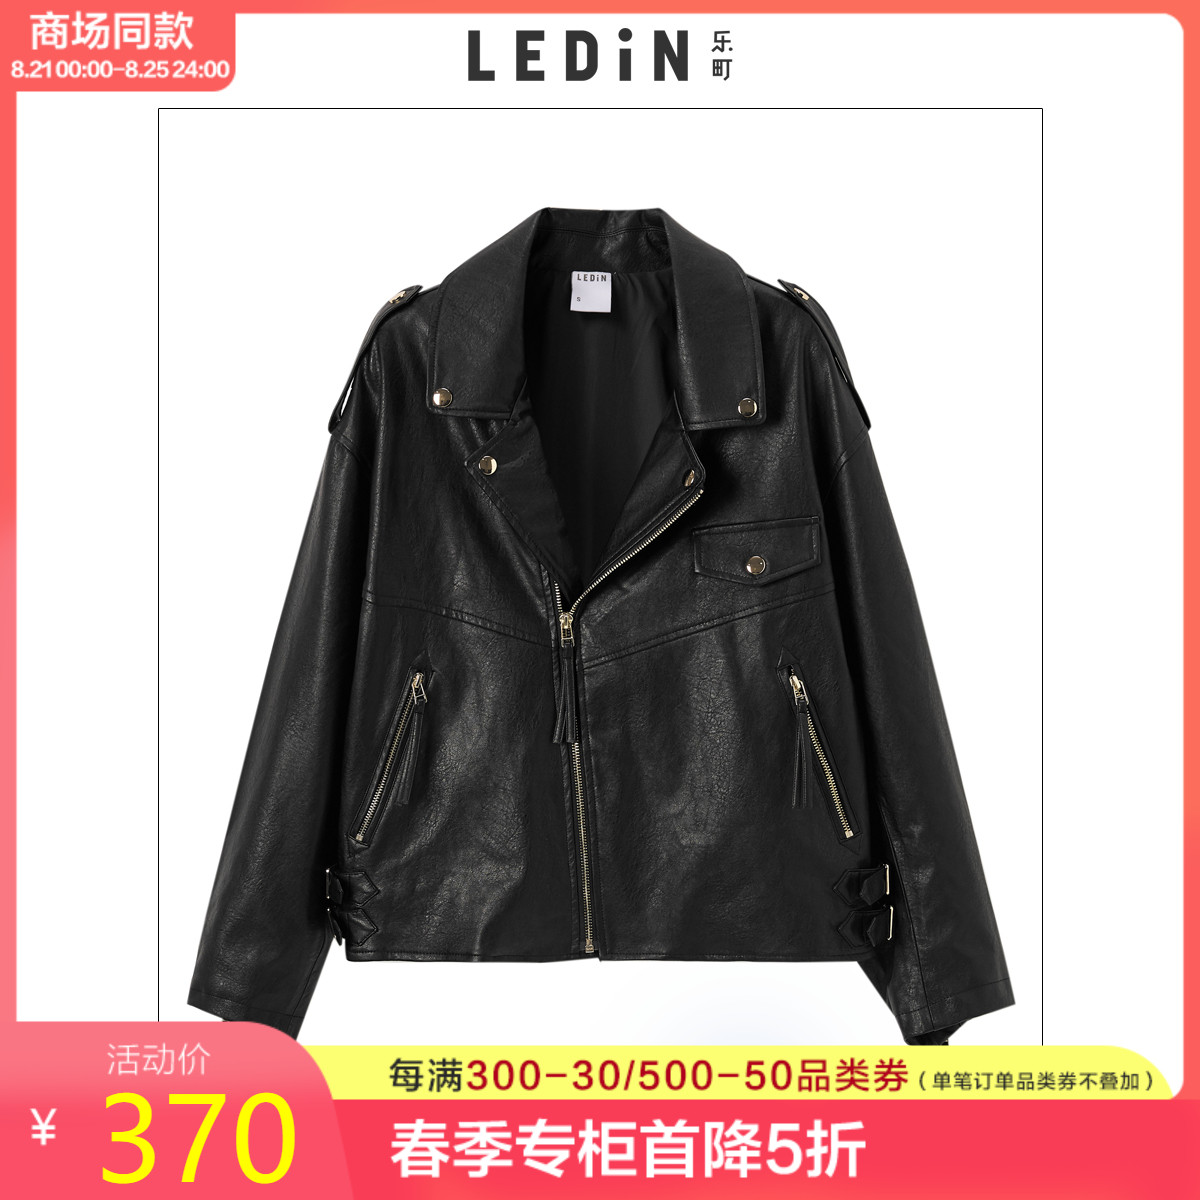 Shopping mall with Le Ting casual leather imitation 2020 summer new black leather women c2bha1101